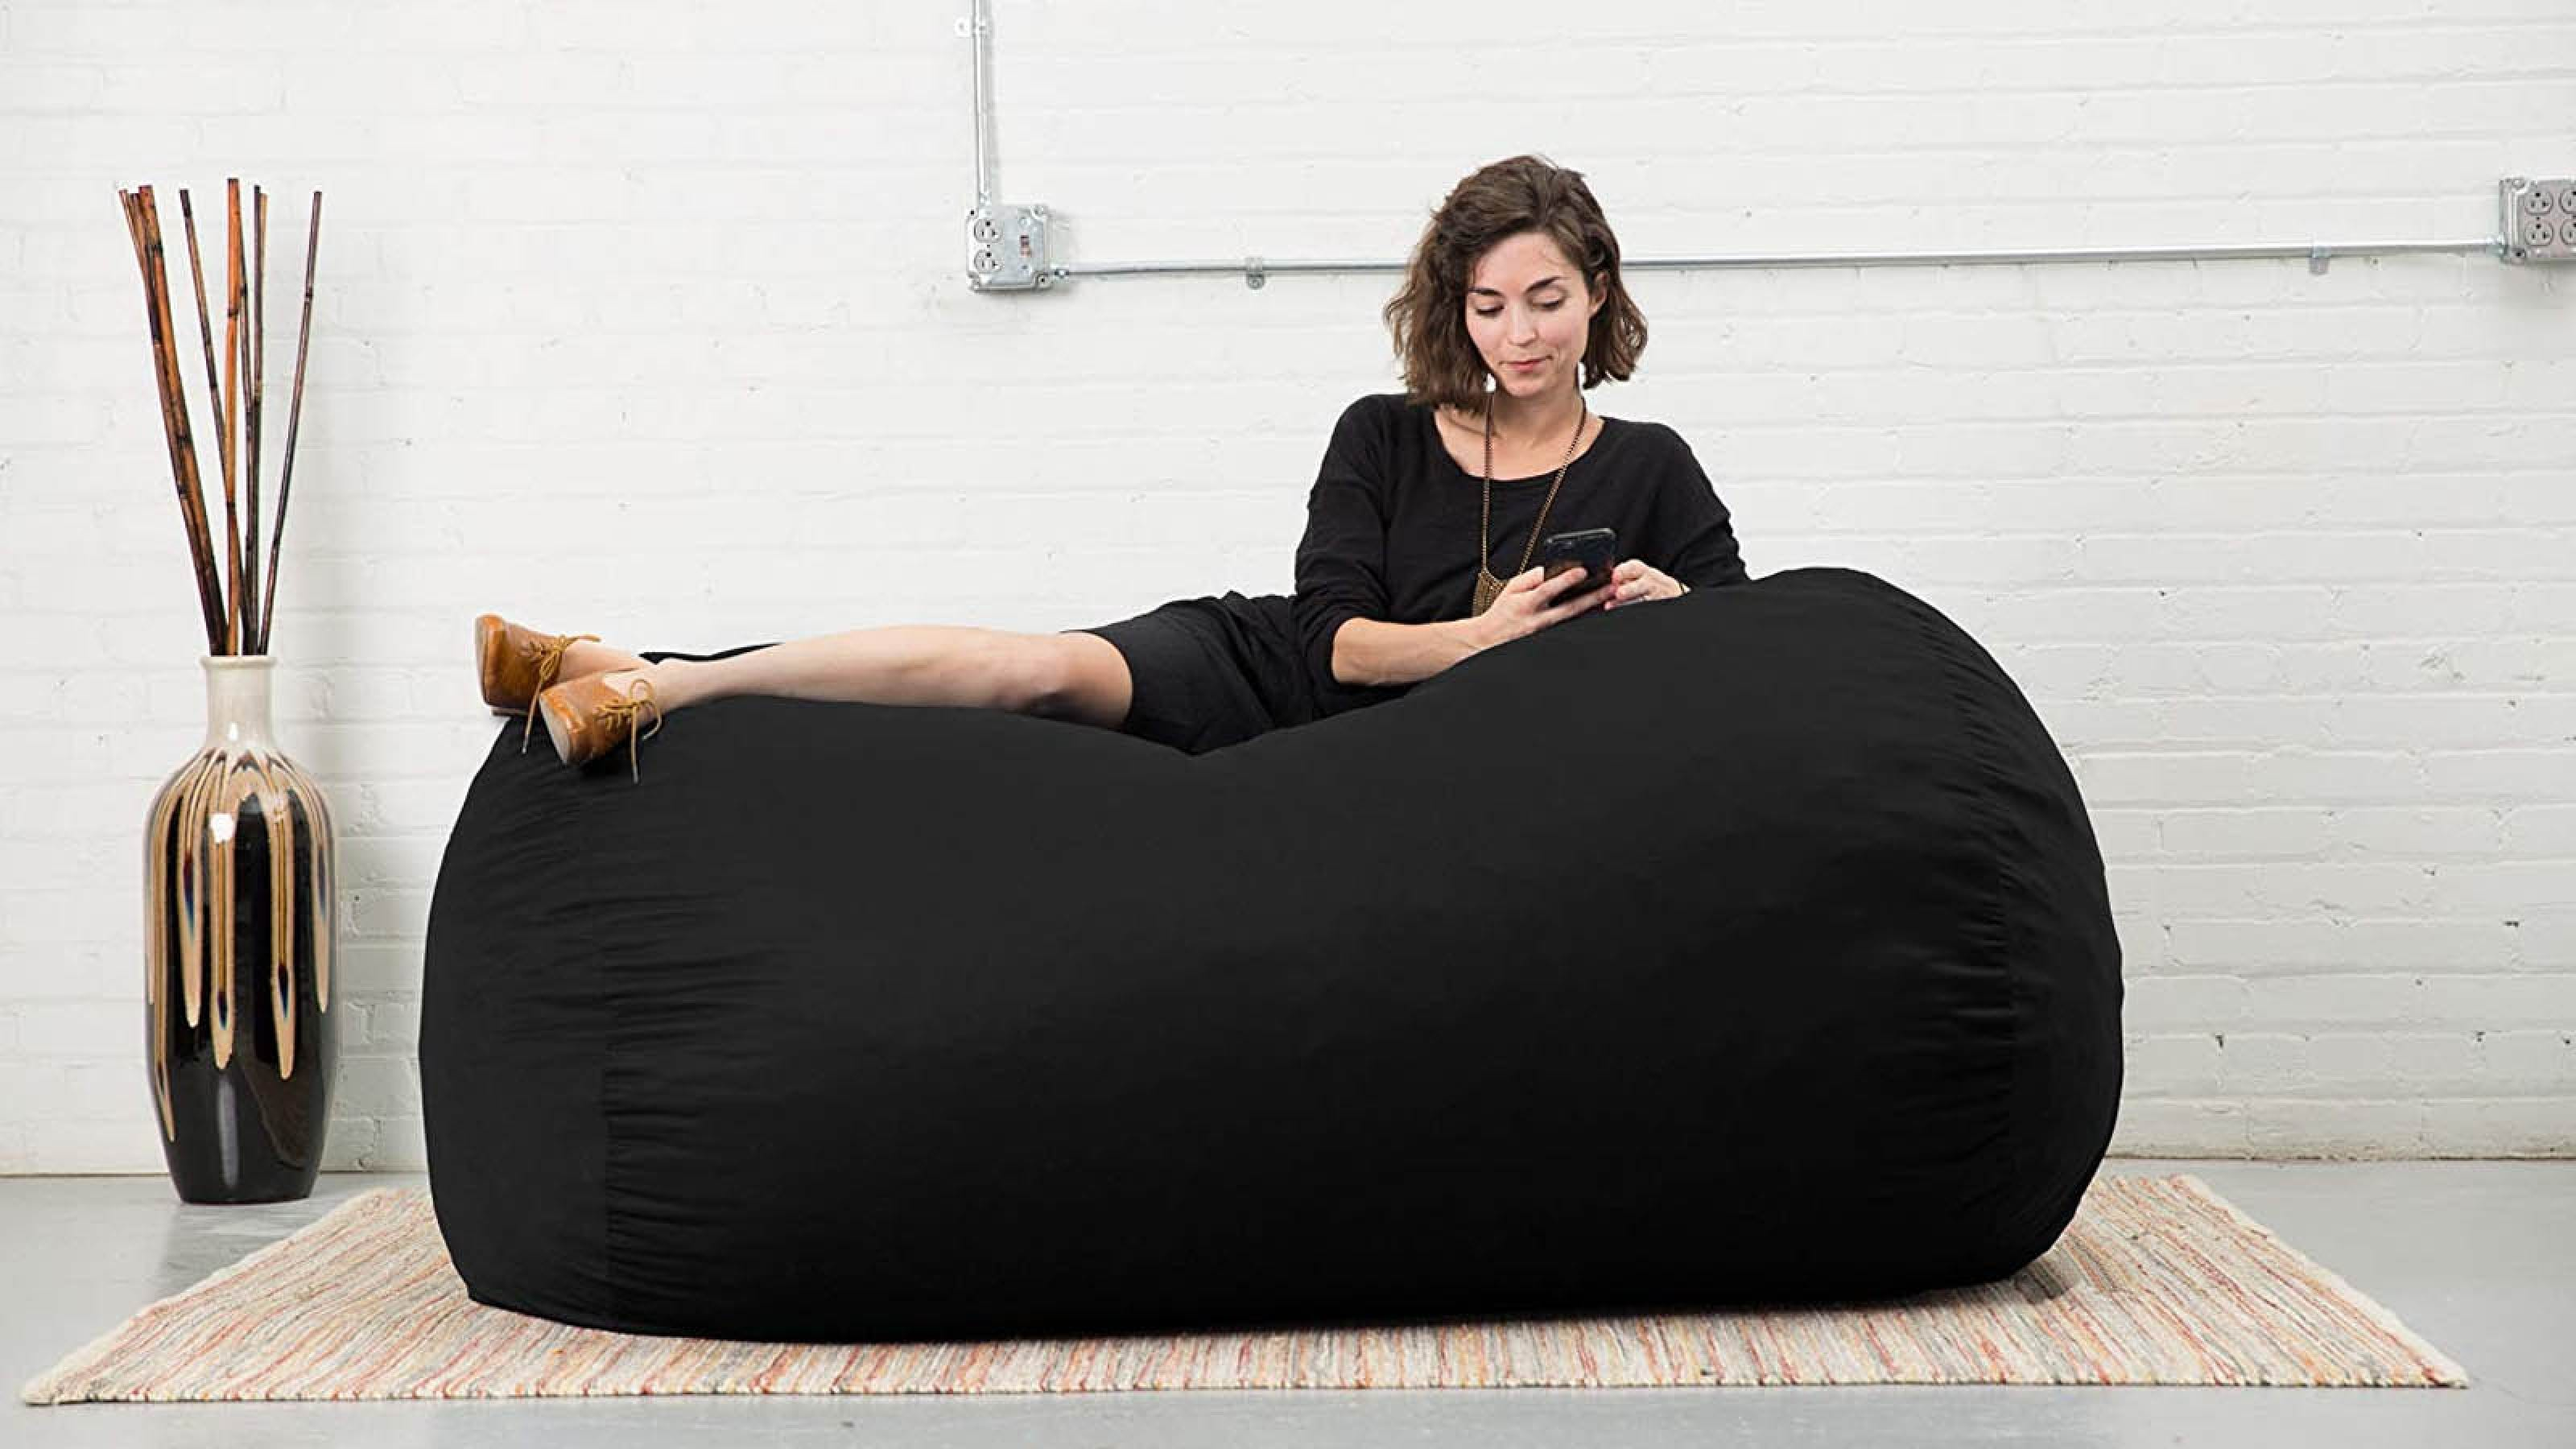 Fine The Best Large Bean Bag Chairs For Your Rec Room Dorm Room Gmtry Best Dining Table And Chair Ideas Images Gmtryco